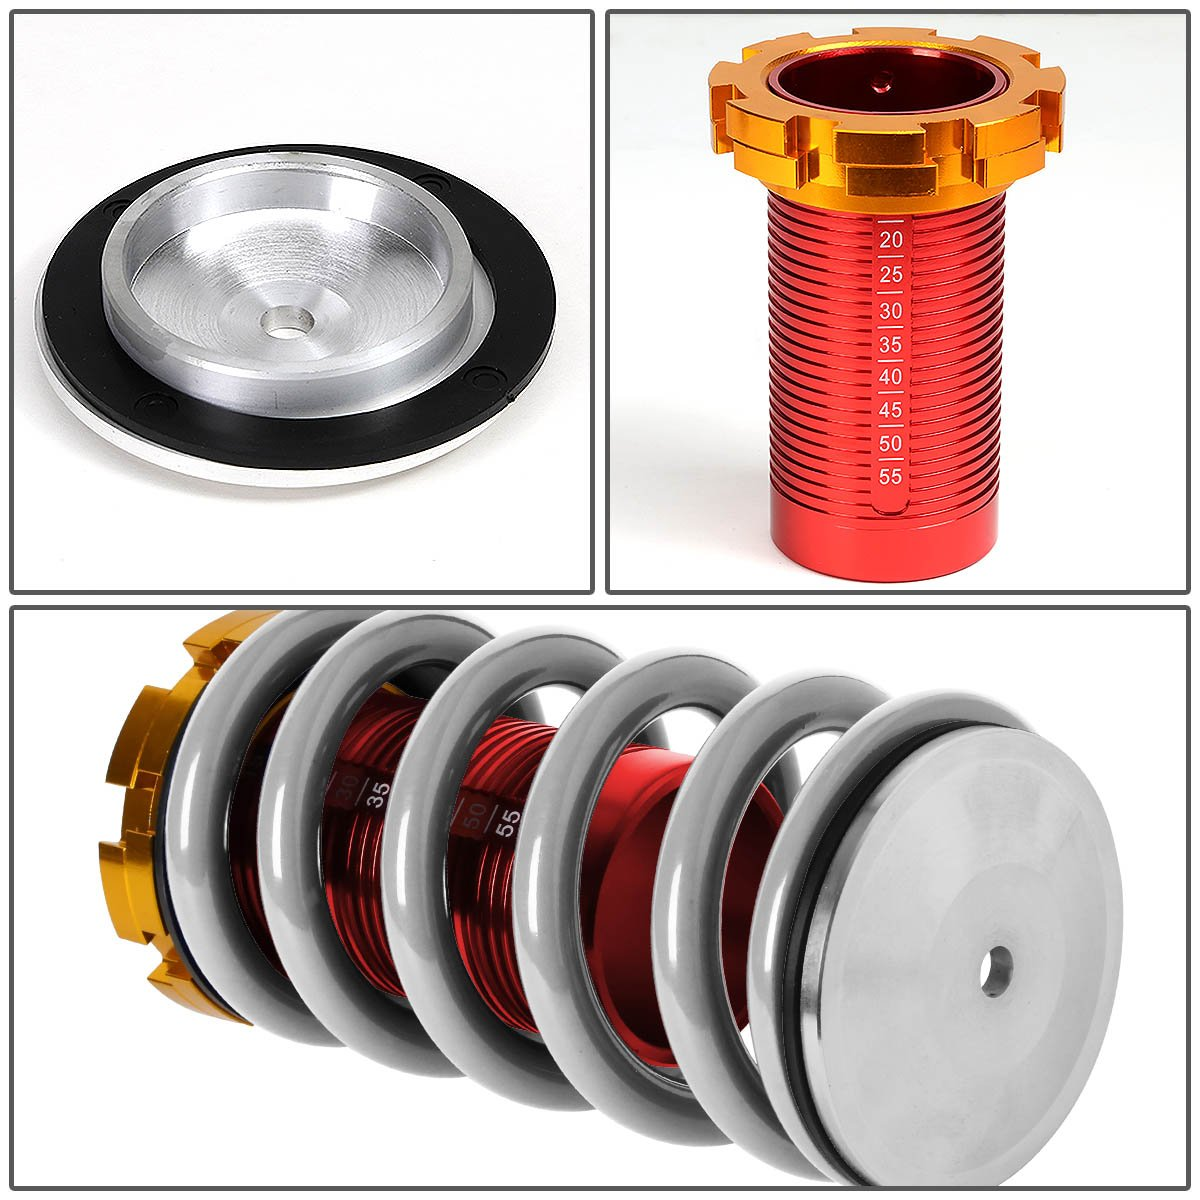 DNA Motoring COILHC88T11SL Coilover Sleeve Kit For 88-01 Honda Civic Del Sol CRX Acura Integra